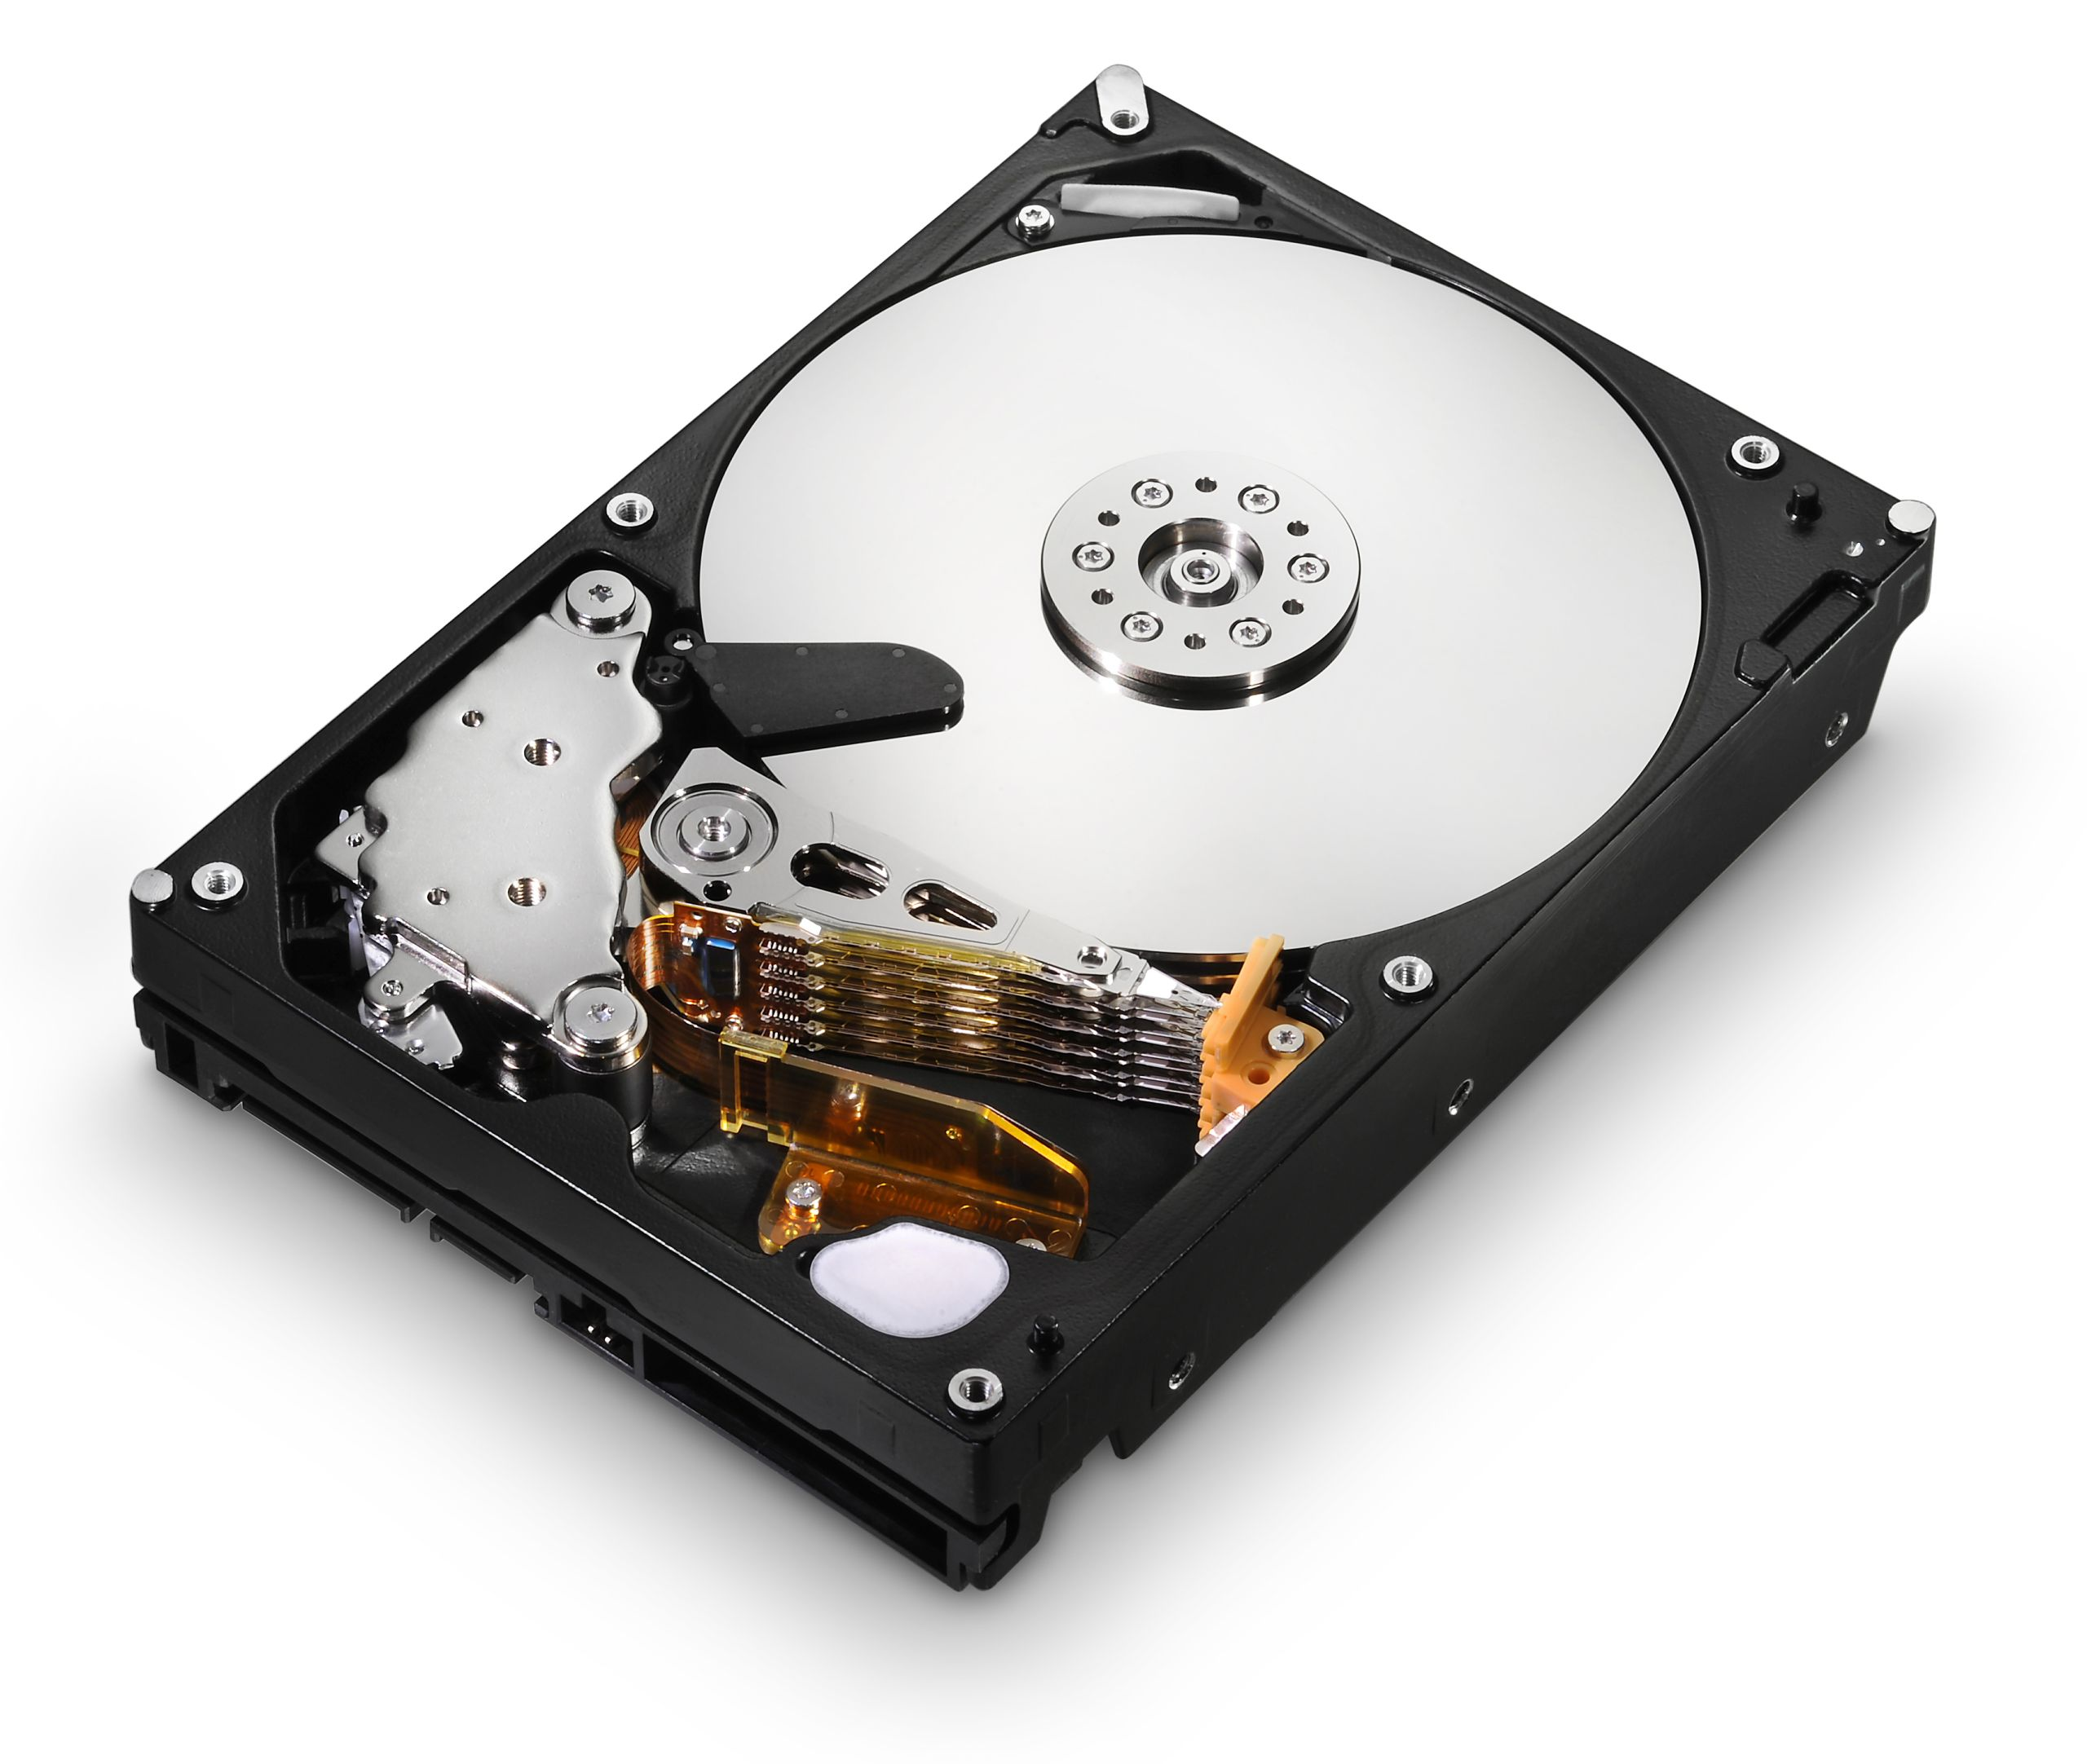 Hitachi 2TB Hard Disk Drives Ship Out